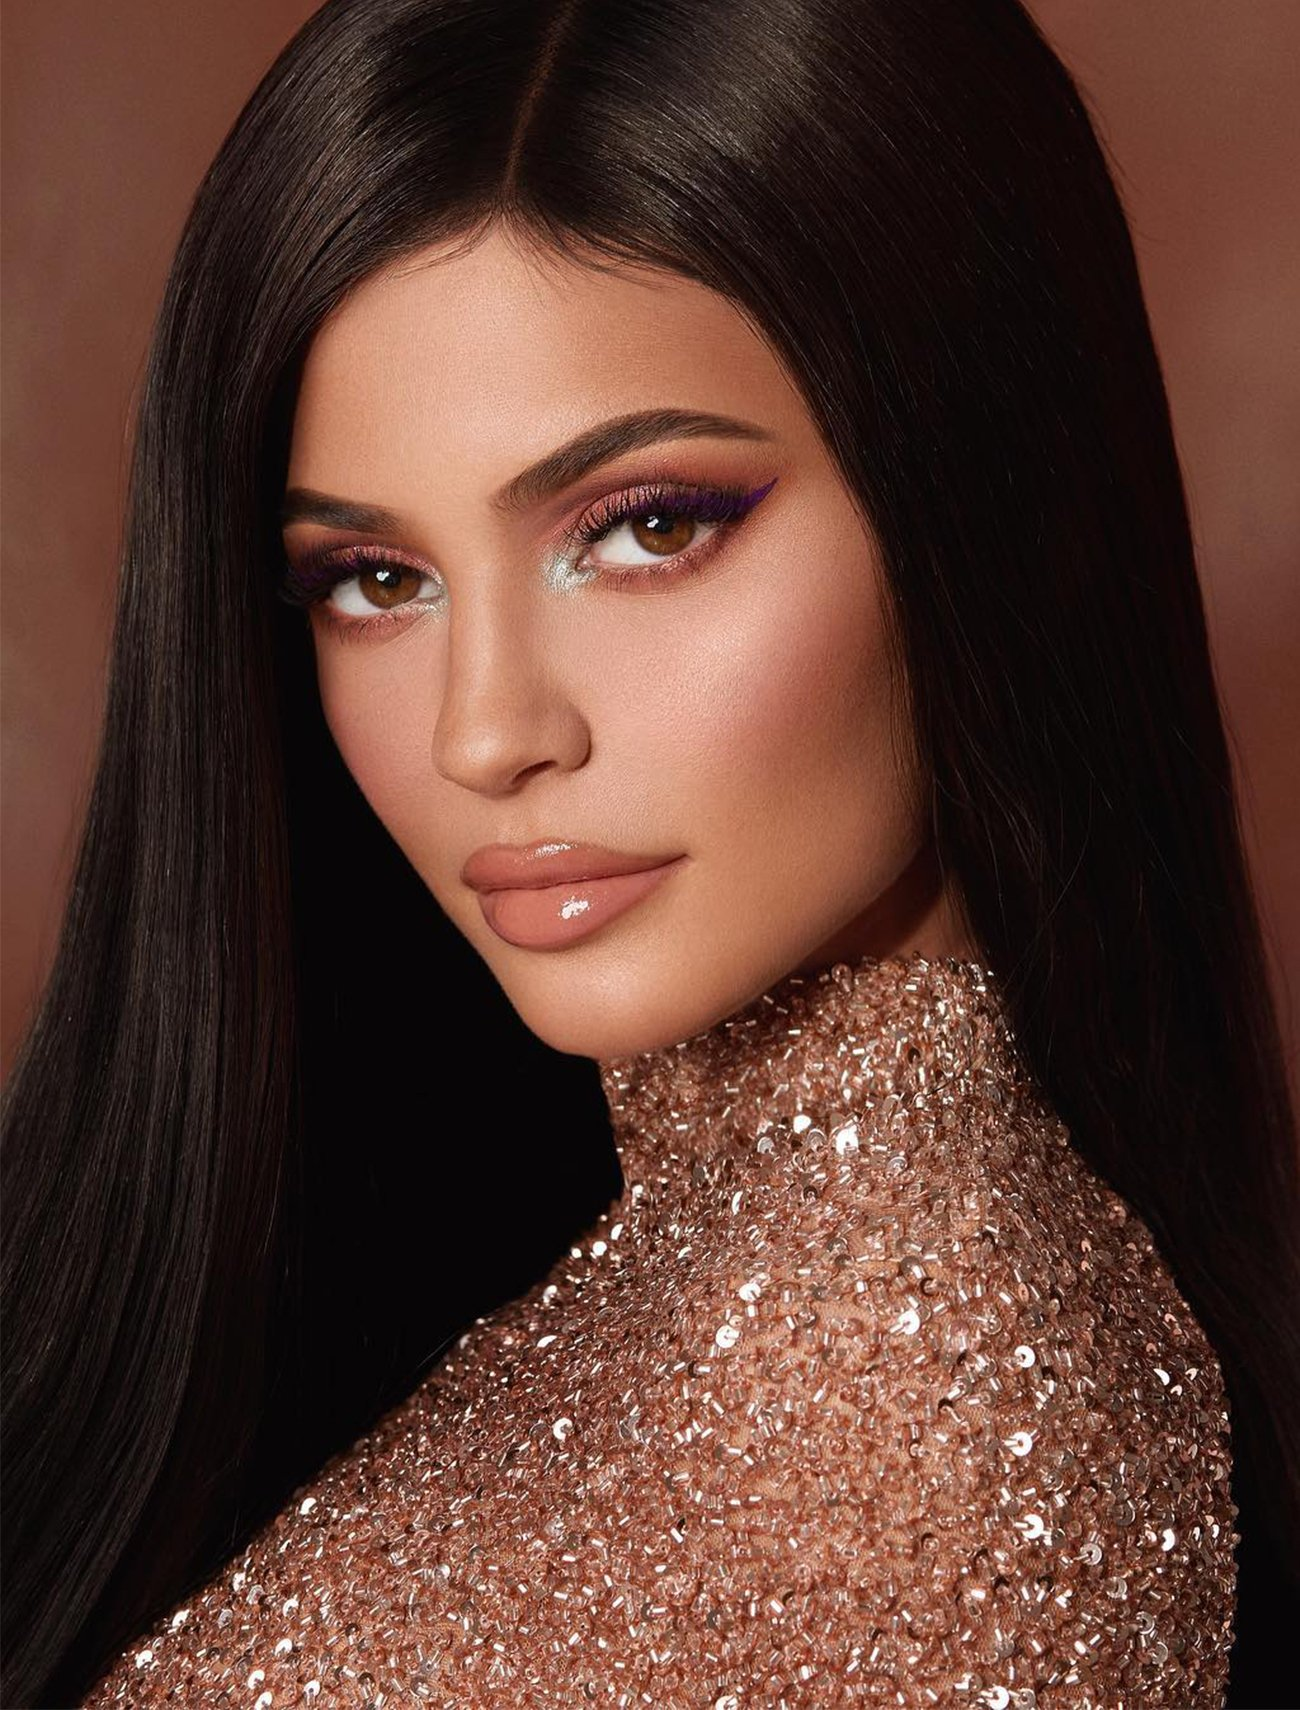 Kylie Jenner | Speakers Bureau and Booking Agent Info